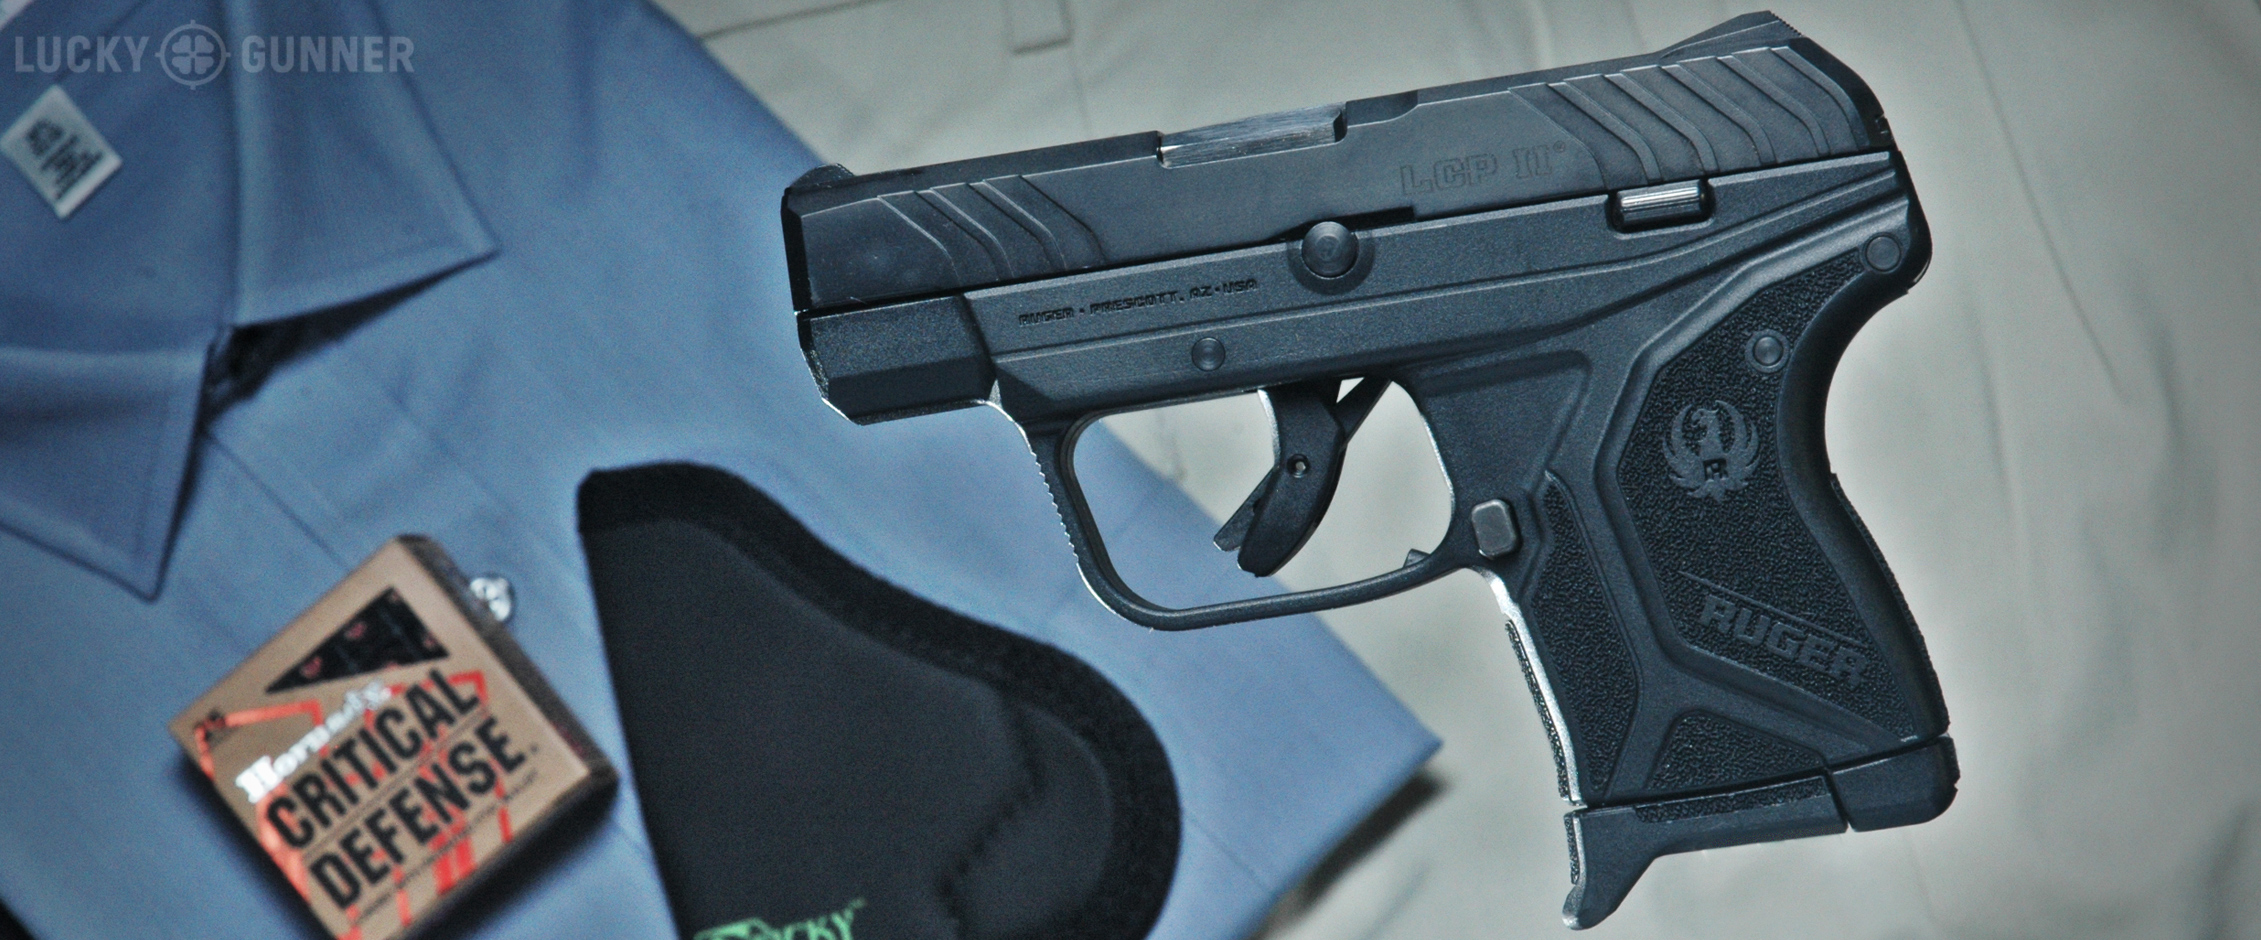 Pocket Pistols - Making The Best of A Bad Situation - Lucky